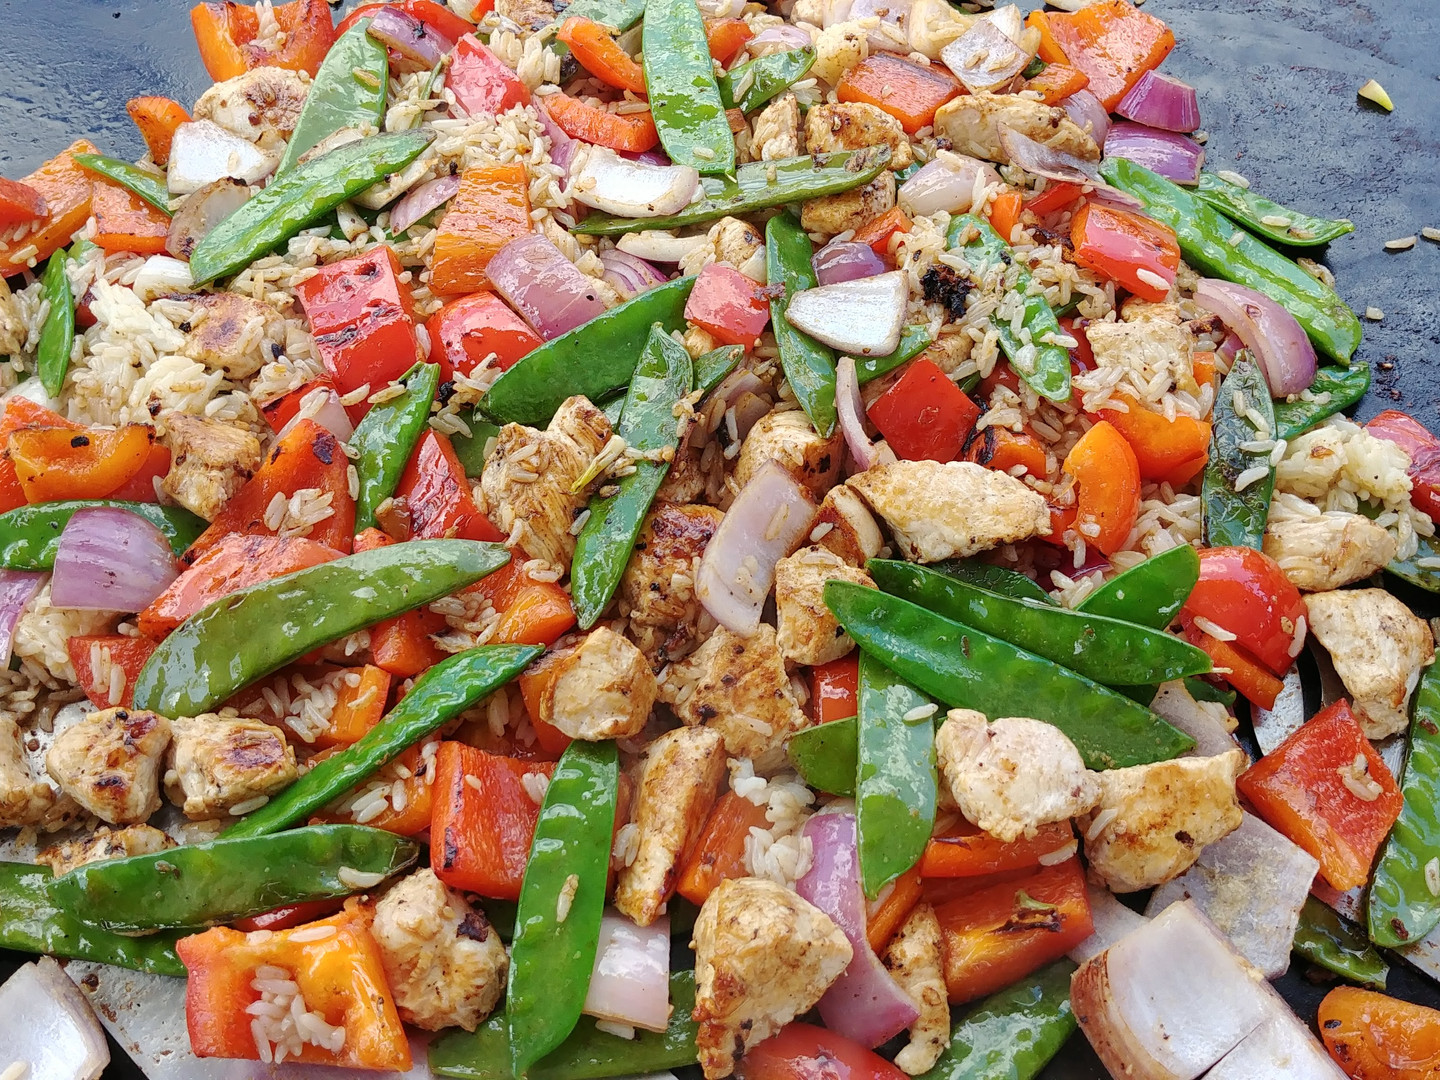 Griddle Stir-Fry